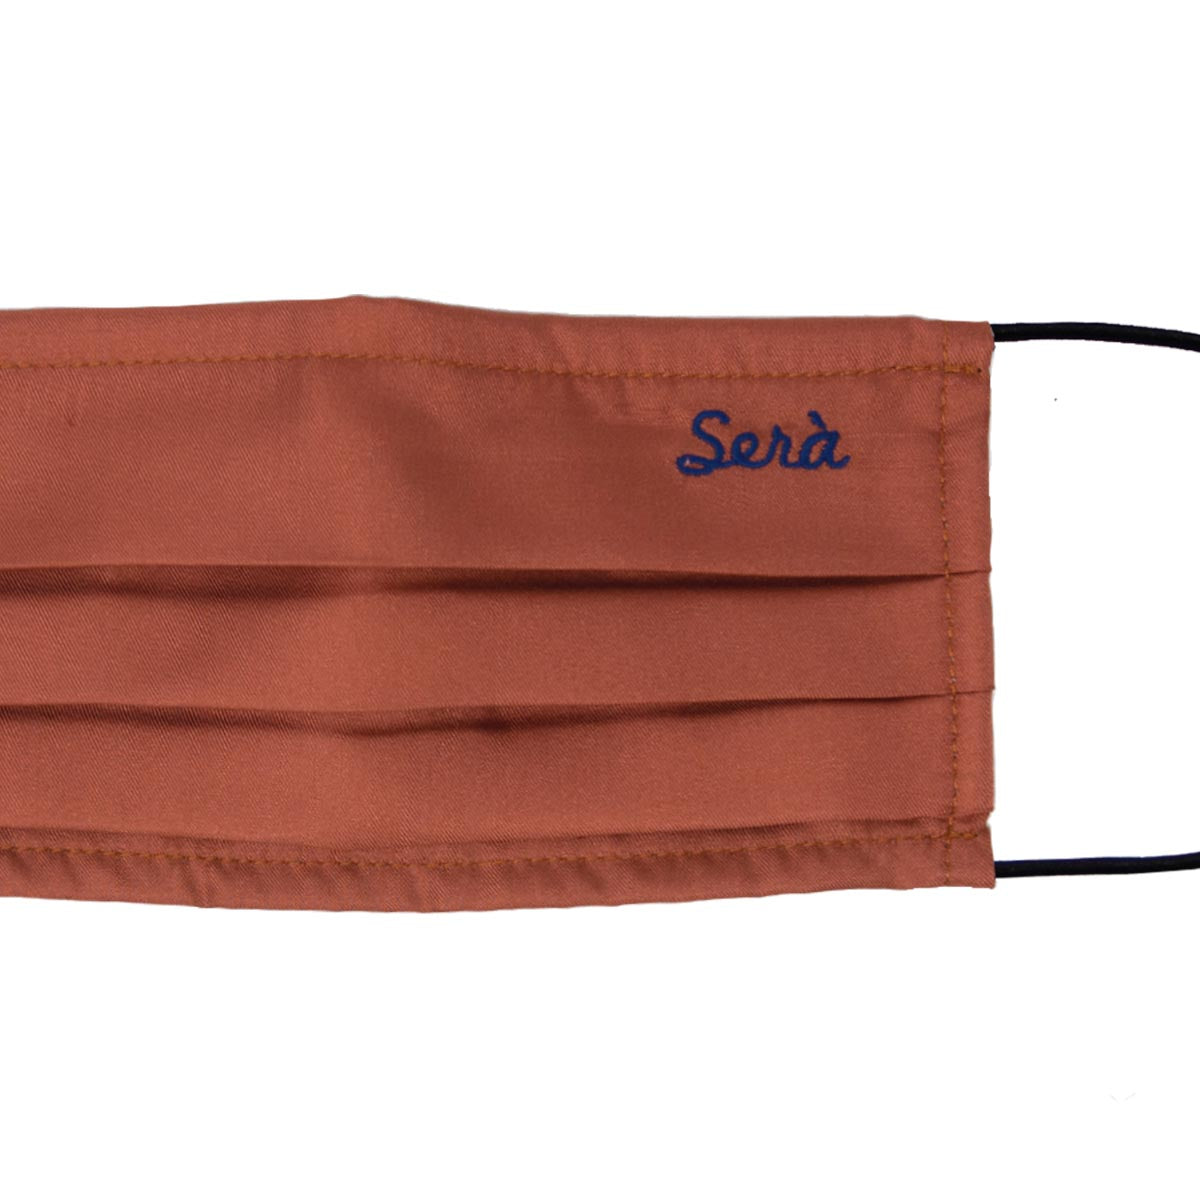 serà fine silk - Rust Silk face cover